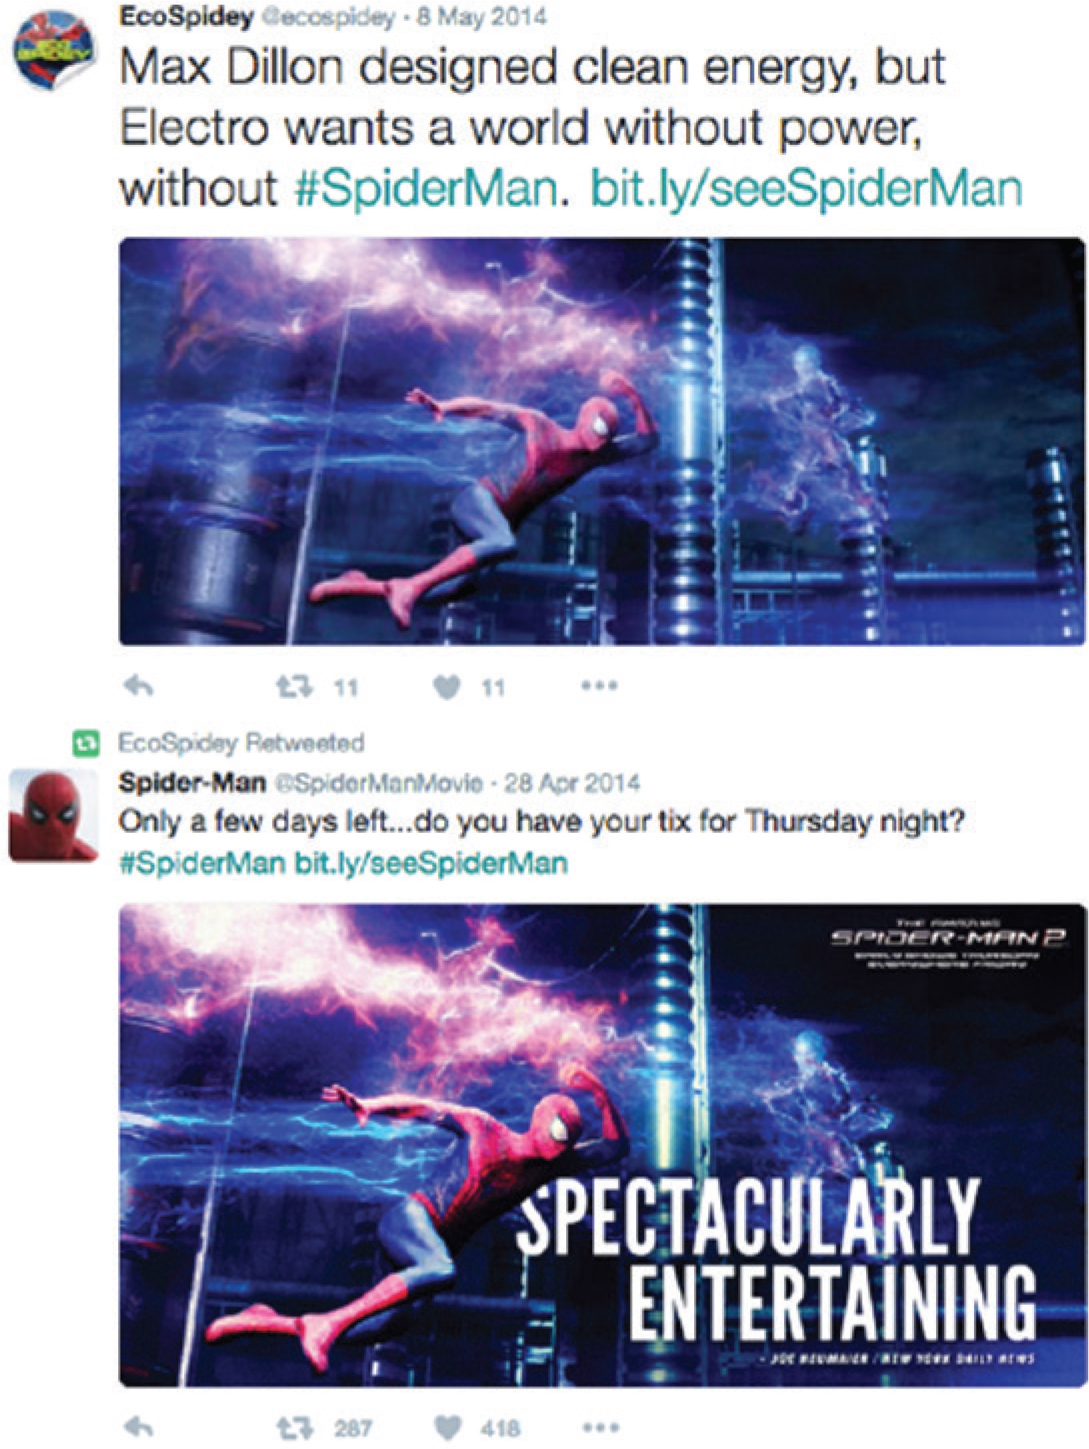 Figure 2. An image used for both @EcoSpidey and @SpiderManMovie Twitter campaigns.